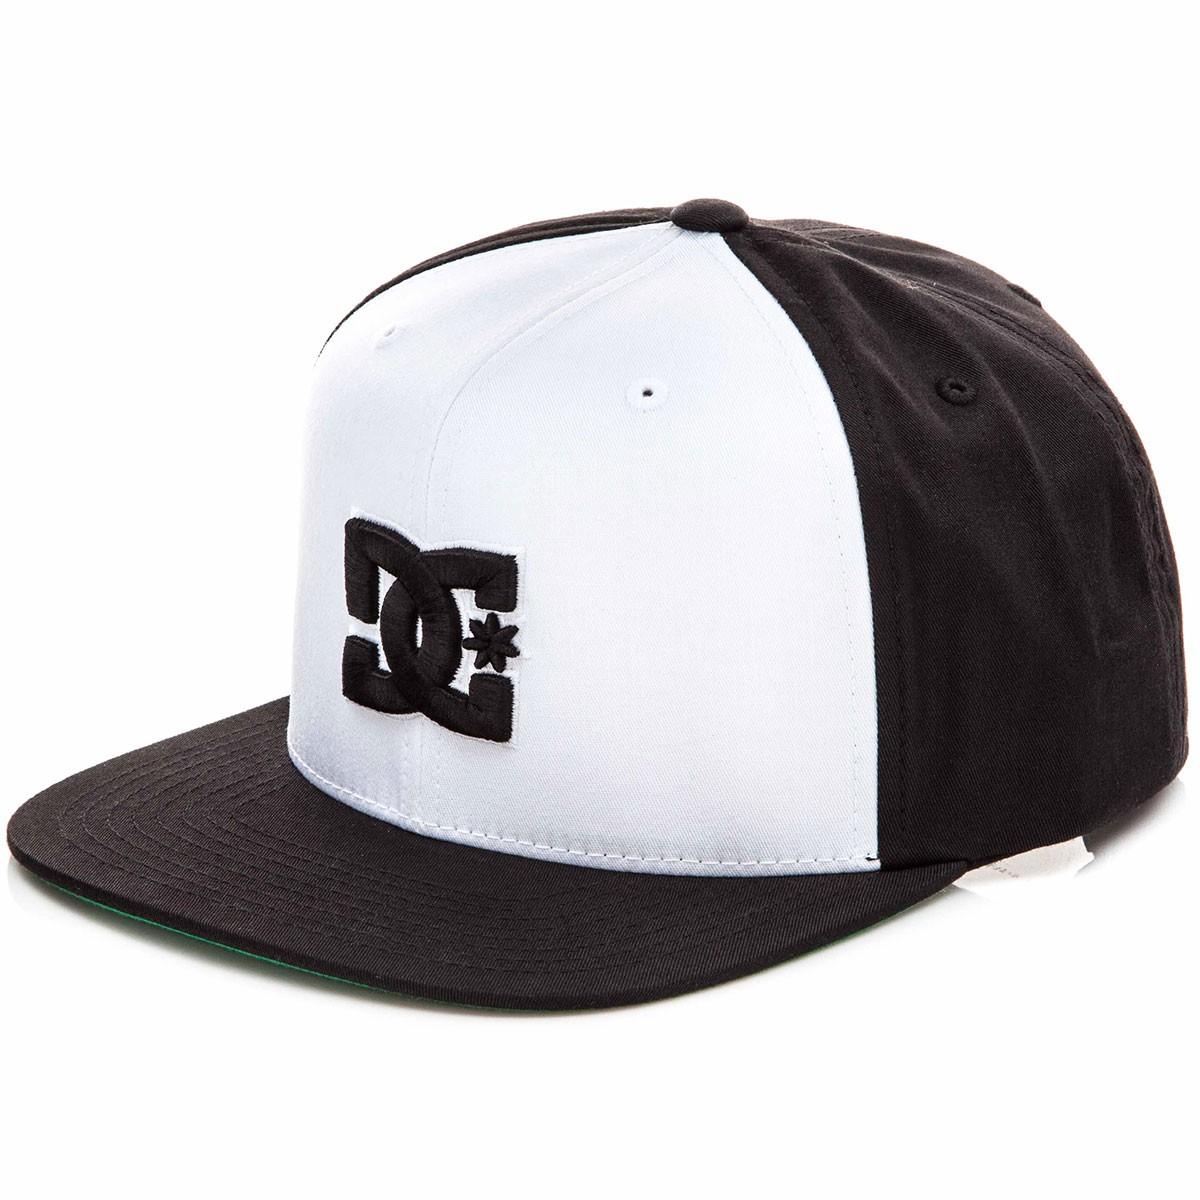 DC Snappy Hat - White/Black